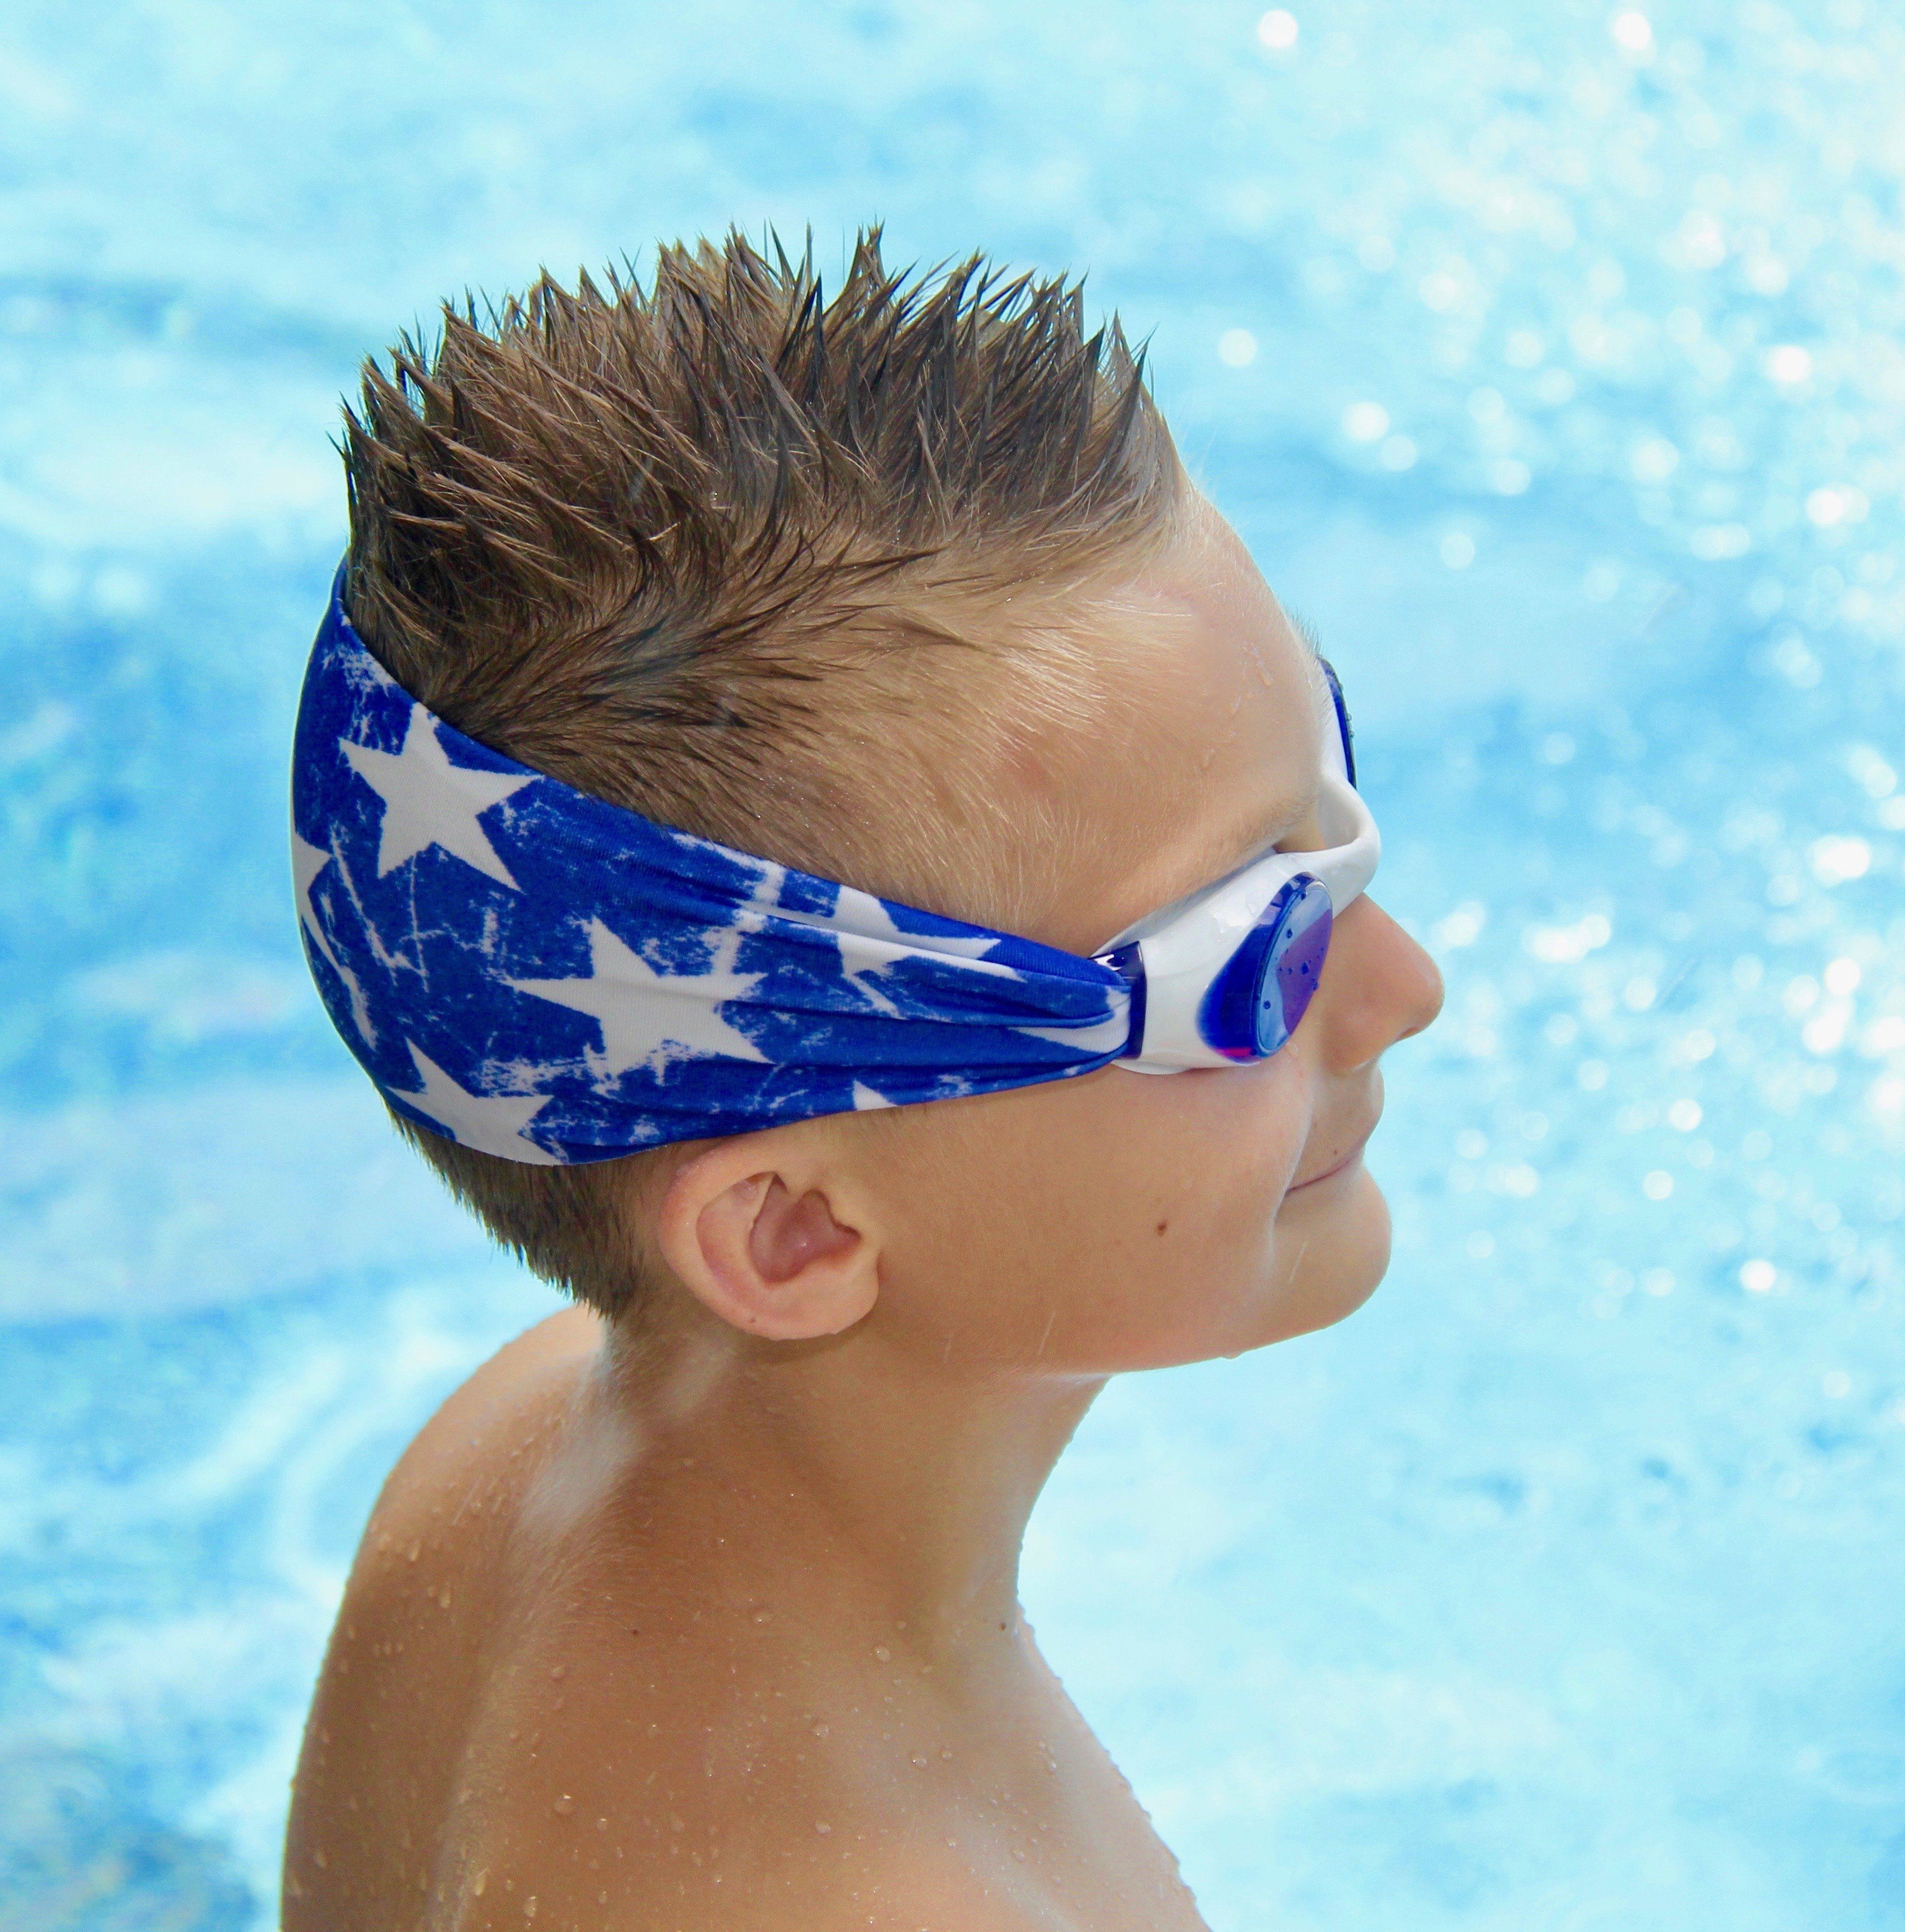 Splash Swim Goggles are designed to keep kids from pulling their hair out.